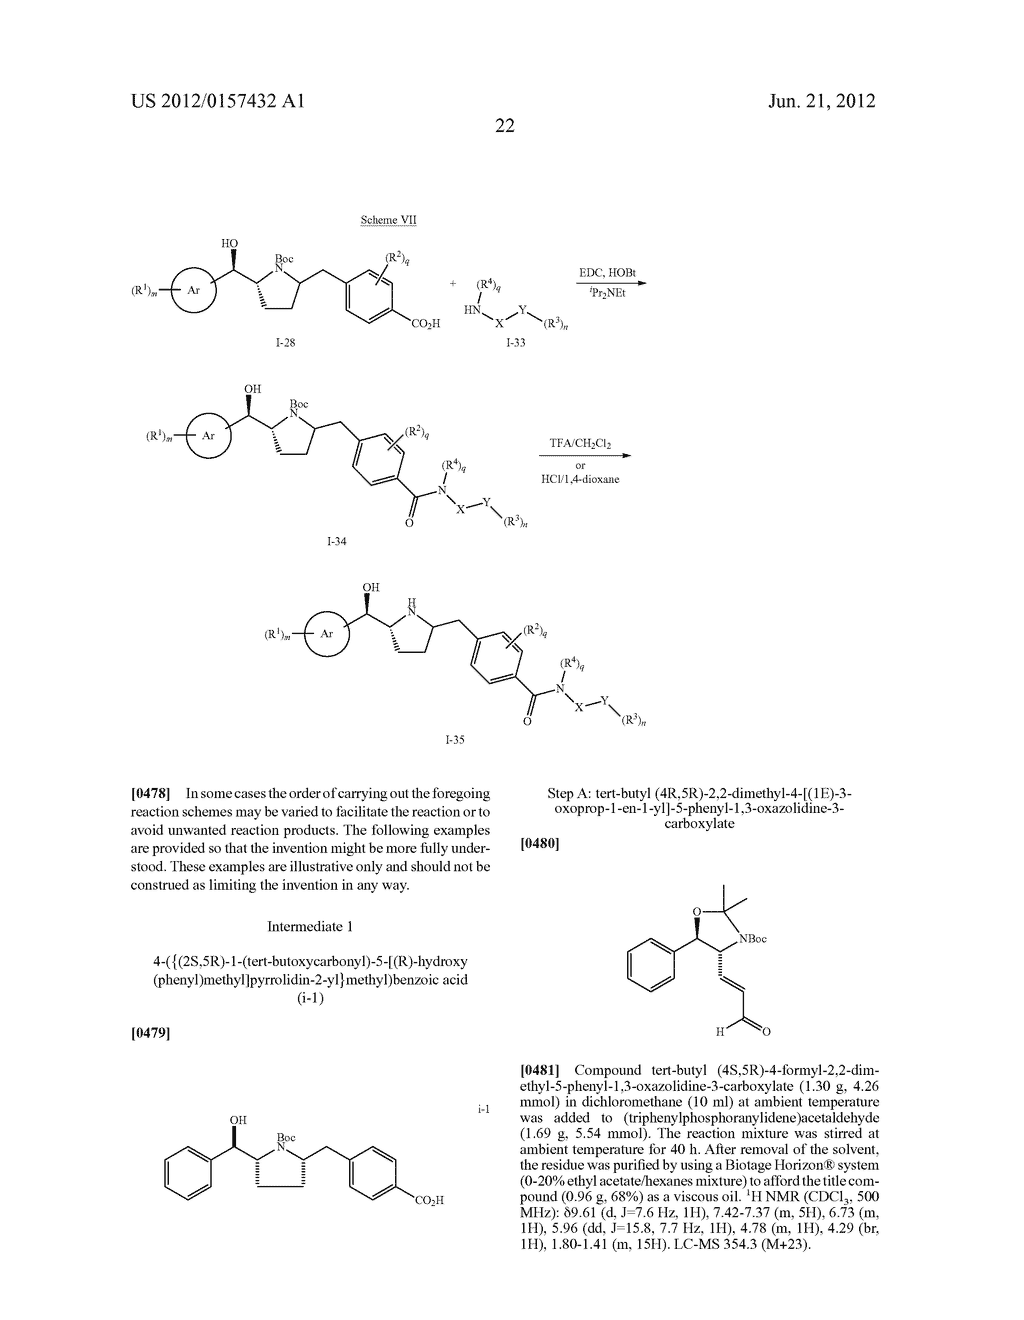 NOVEL PYRROLIDINE DERIVED BETA 3 ADRENERGIC RECEPTOR AGONISTS - diagram, schematic, and image 23